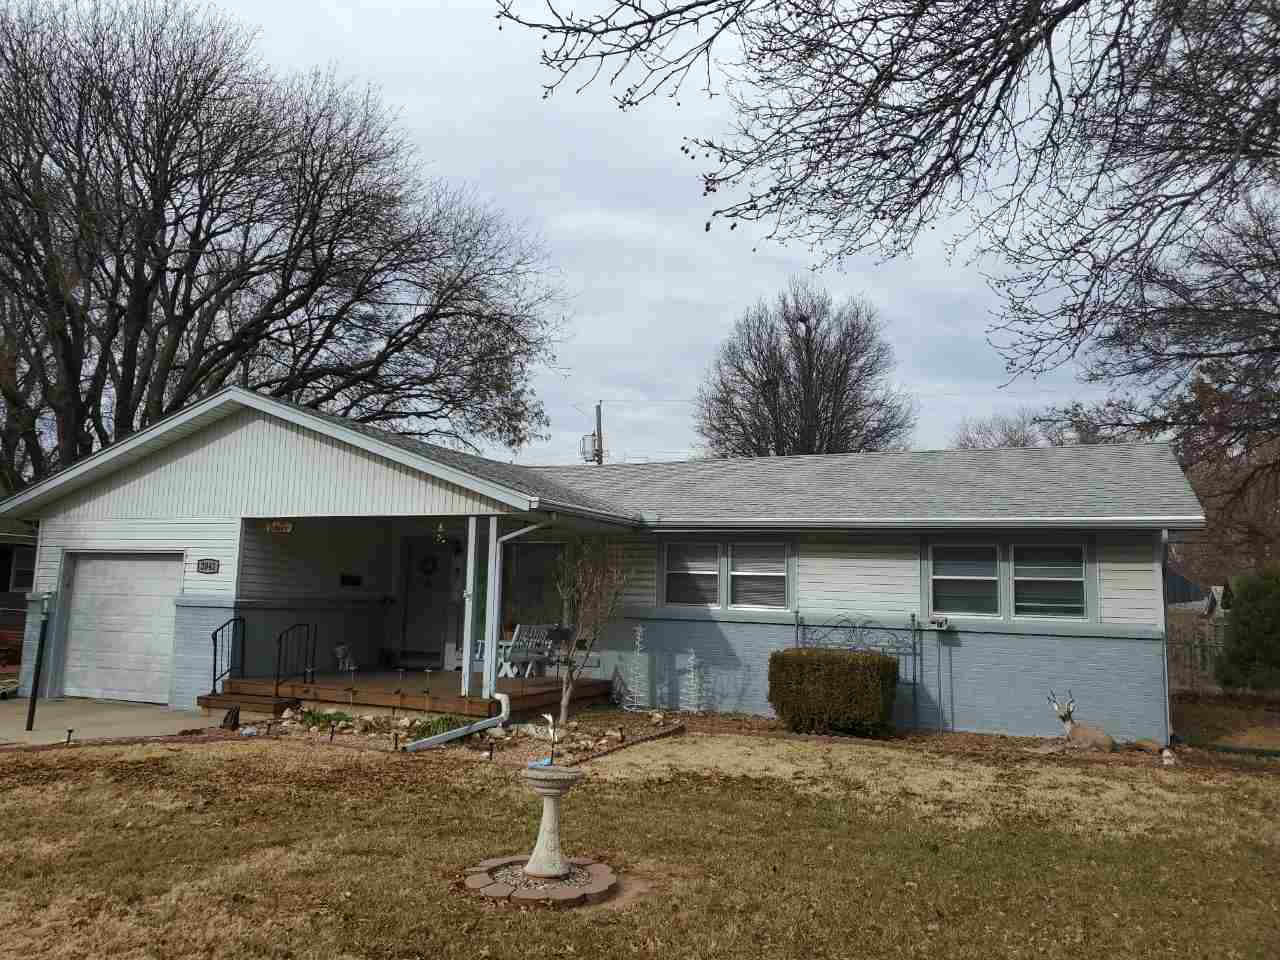 Welcome to this well maintained 3 bedroom, 1.5 bath home in the established area of NW Wichita. Newe